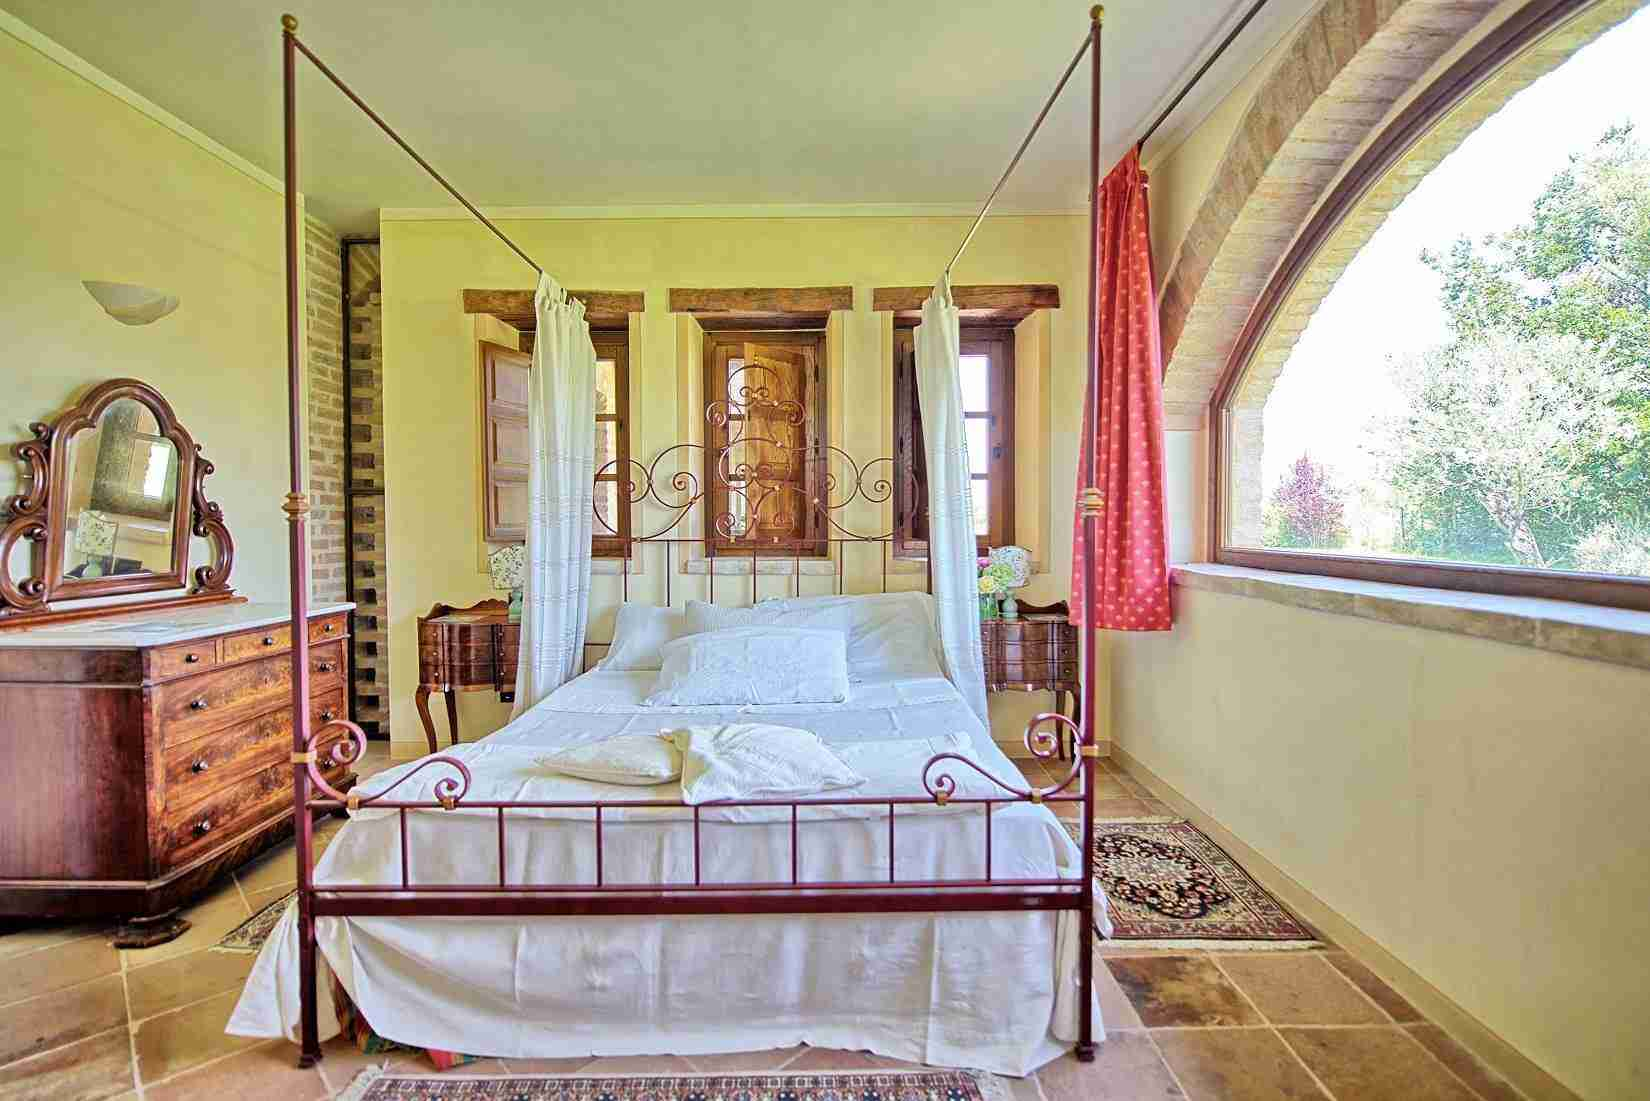 31 Assisi double bedroom